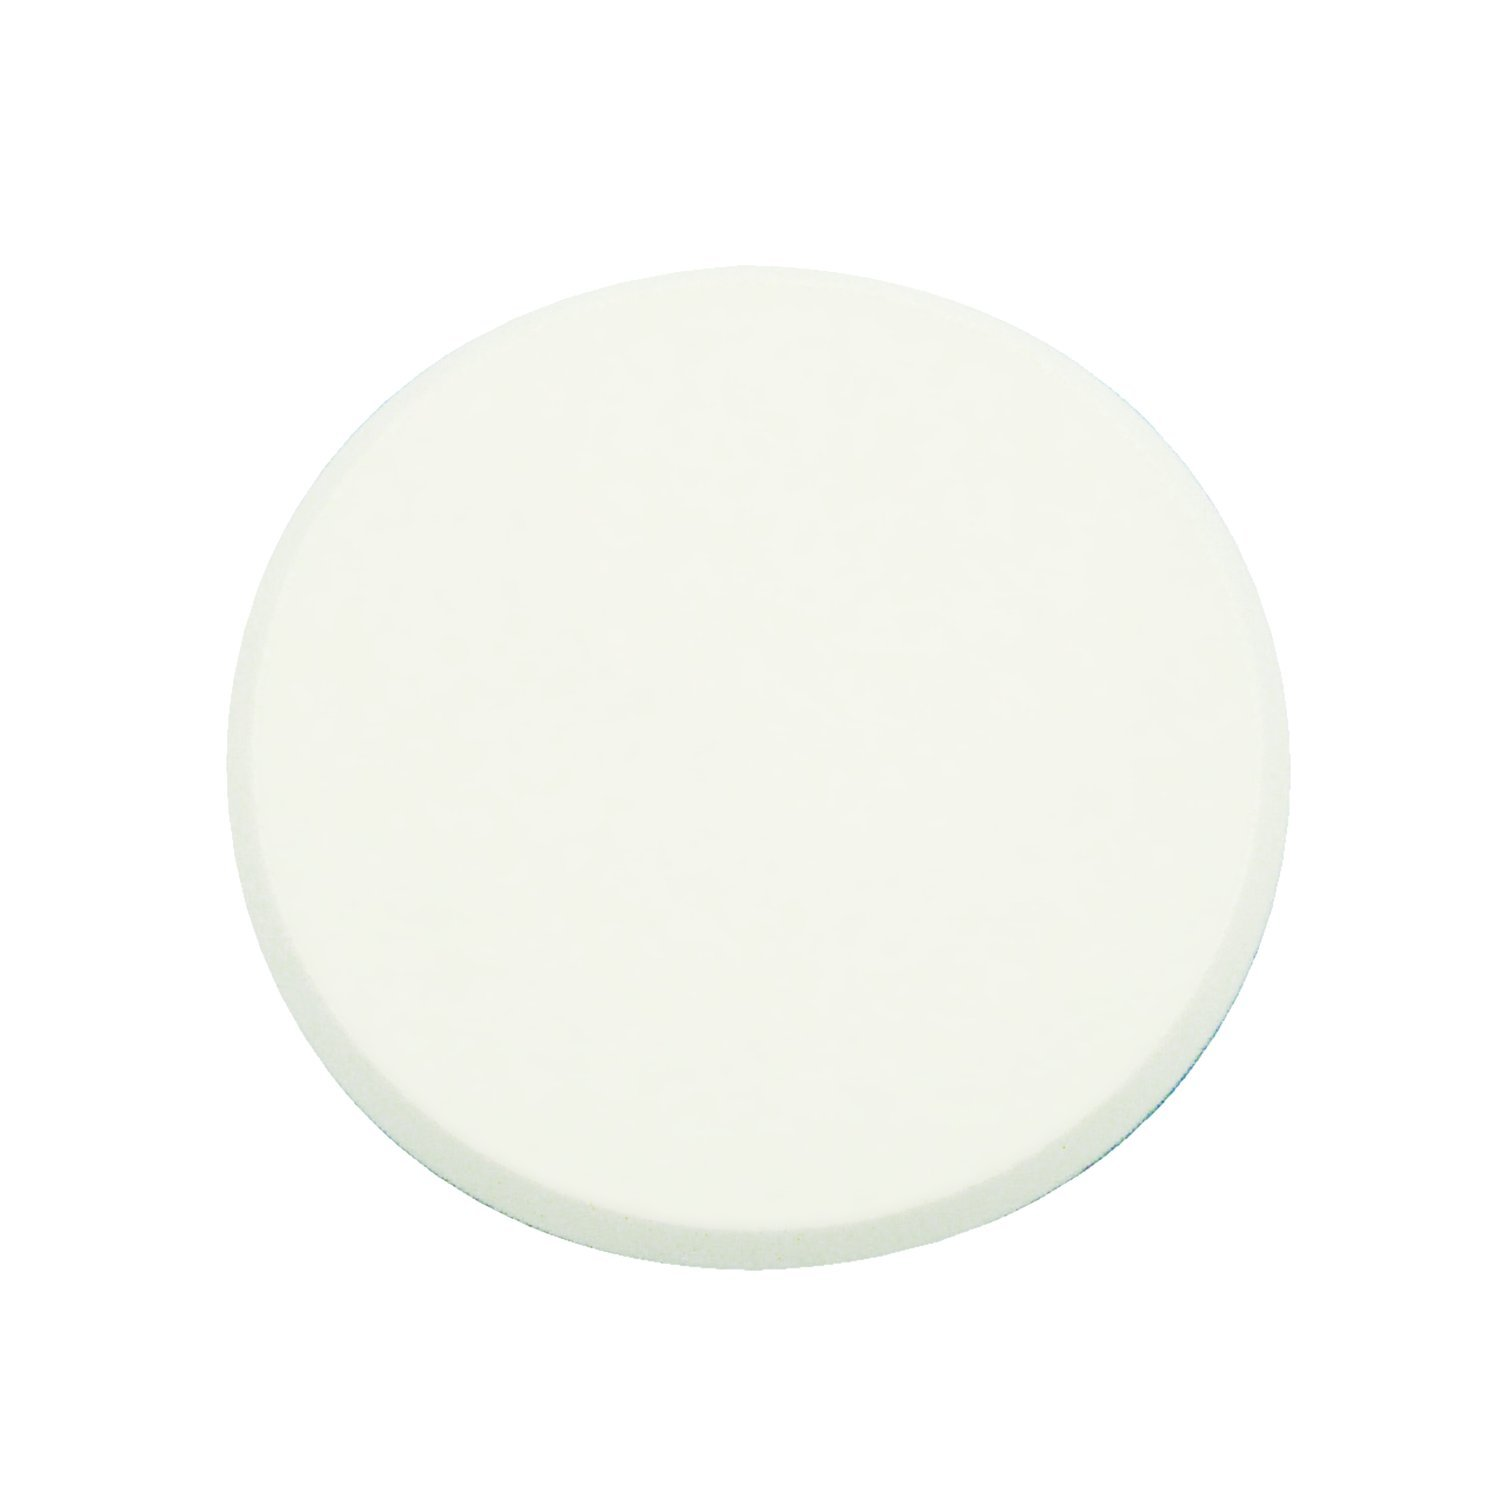 Prime-Line Products MP9270 Wall Protector, 3-1/4 in, Smooth Surface, Rigid Vinyl, White, Self-Adhesive Backing, Pack of 5